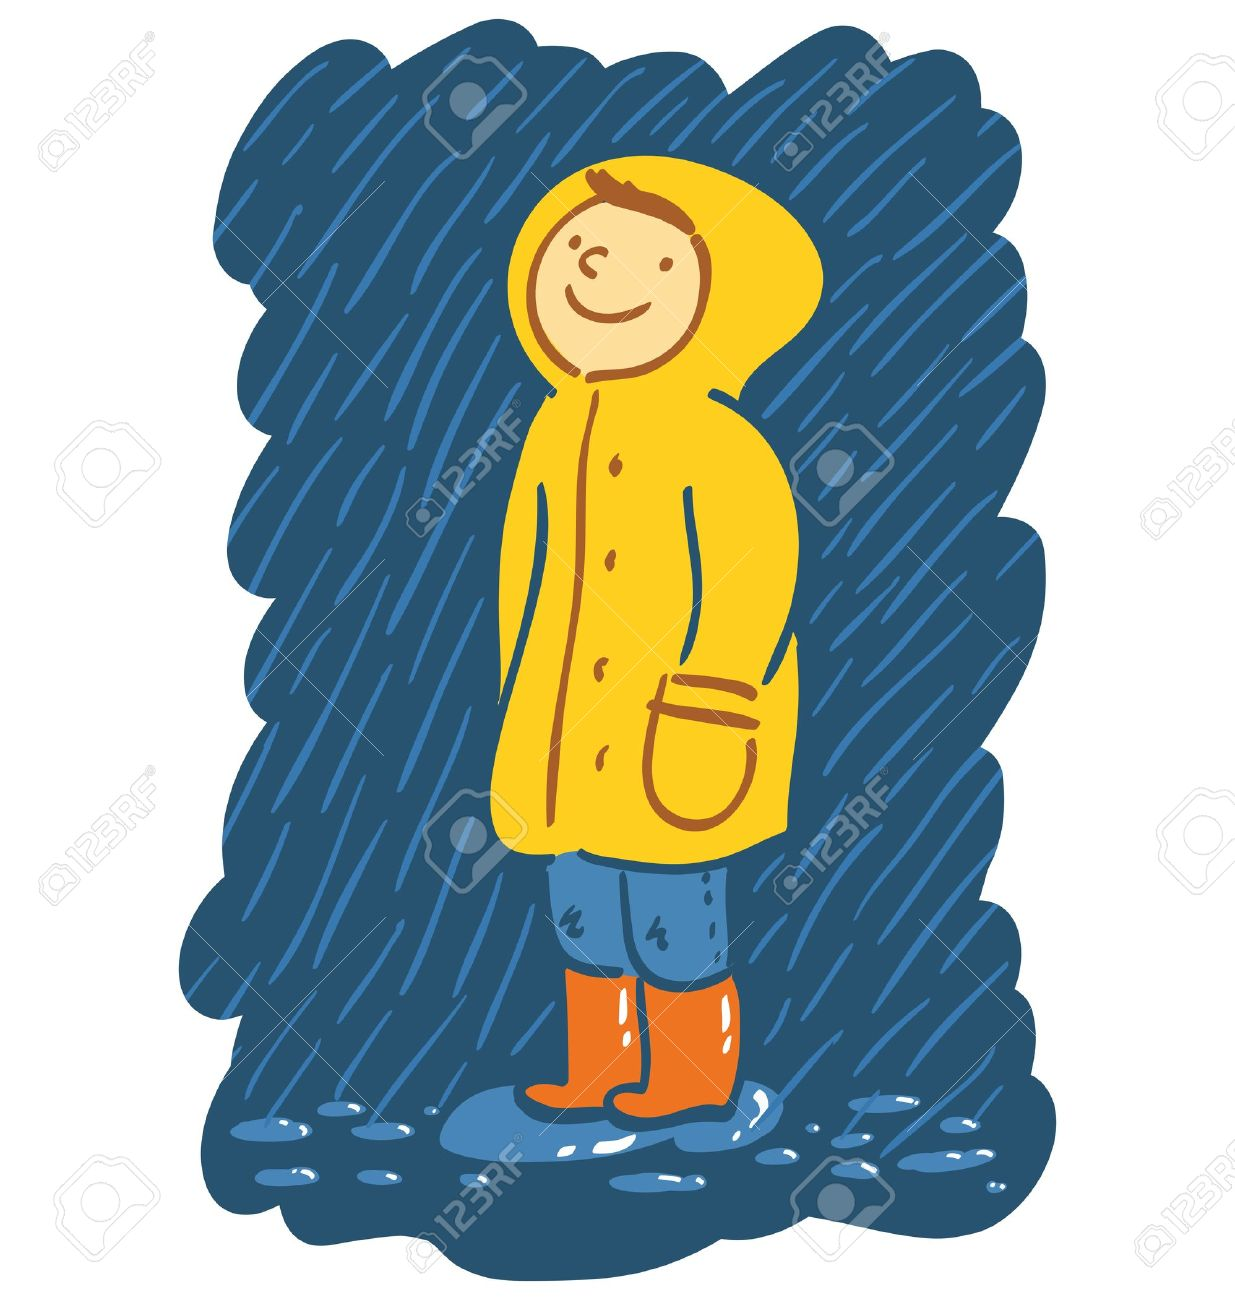 Kids raincoat clipart.